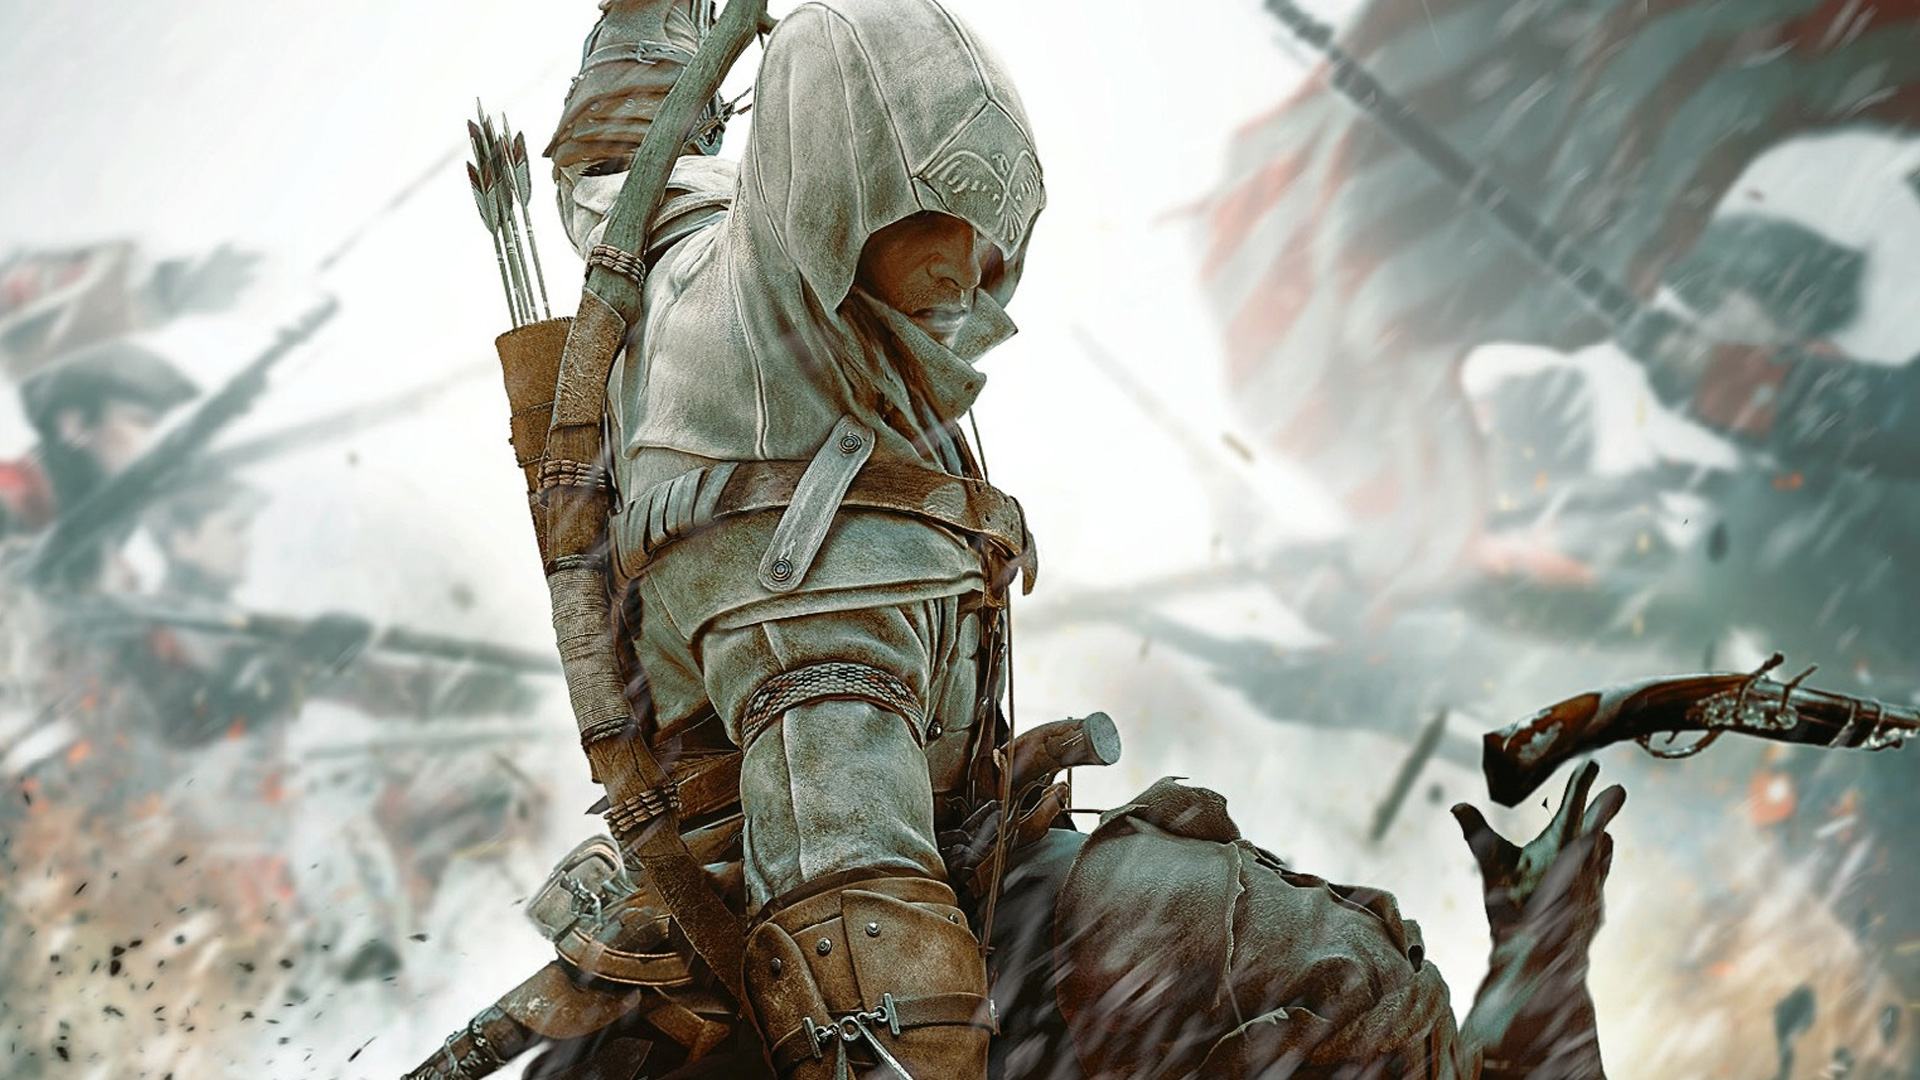 wallpapersassassins creed 3assassins creed 3 wallpapers hd 1080pjpg 1920x1080